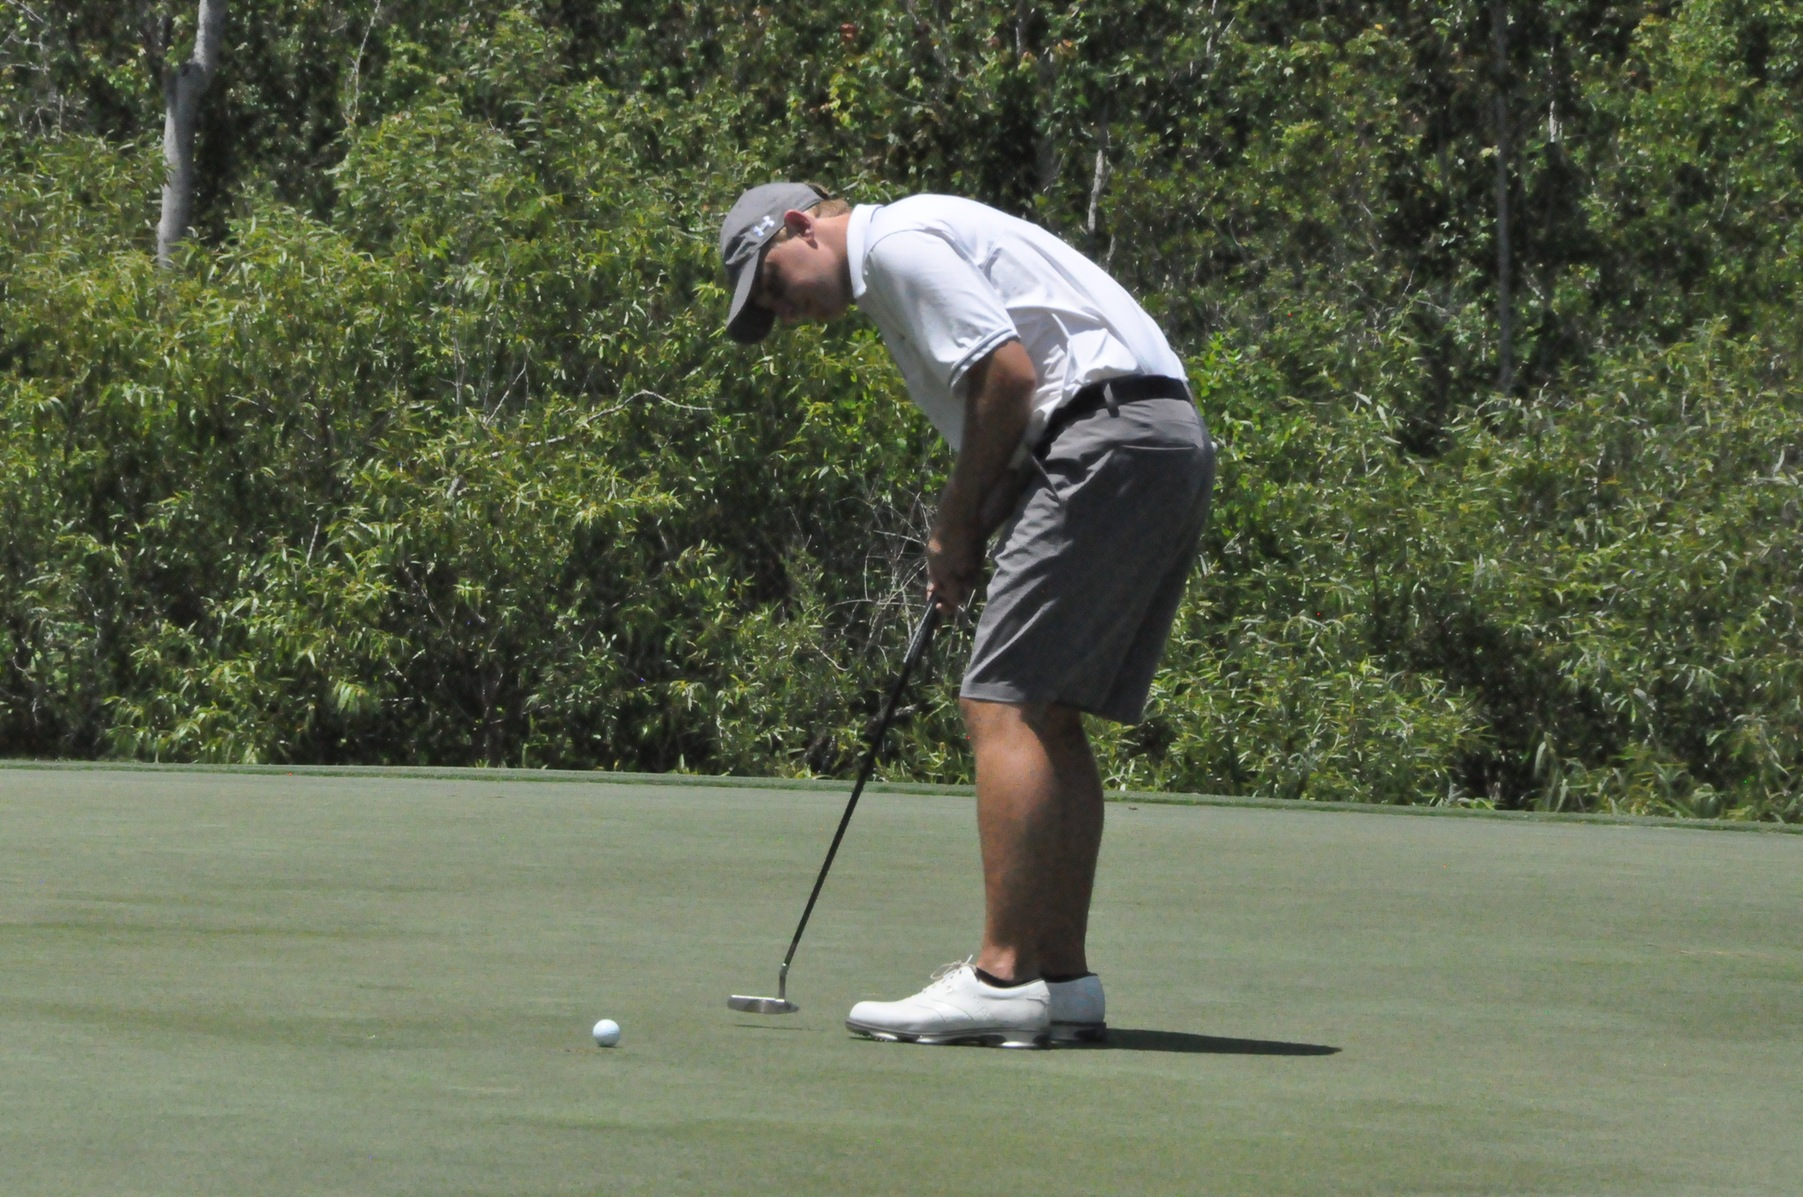 Golf: Panthers slip to tie for eighth after second round of NCAA Division III Championship